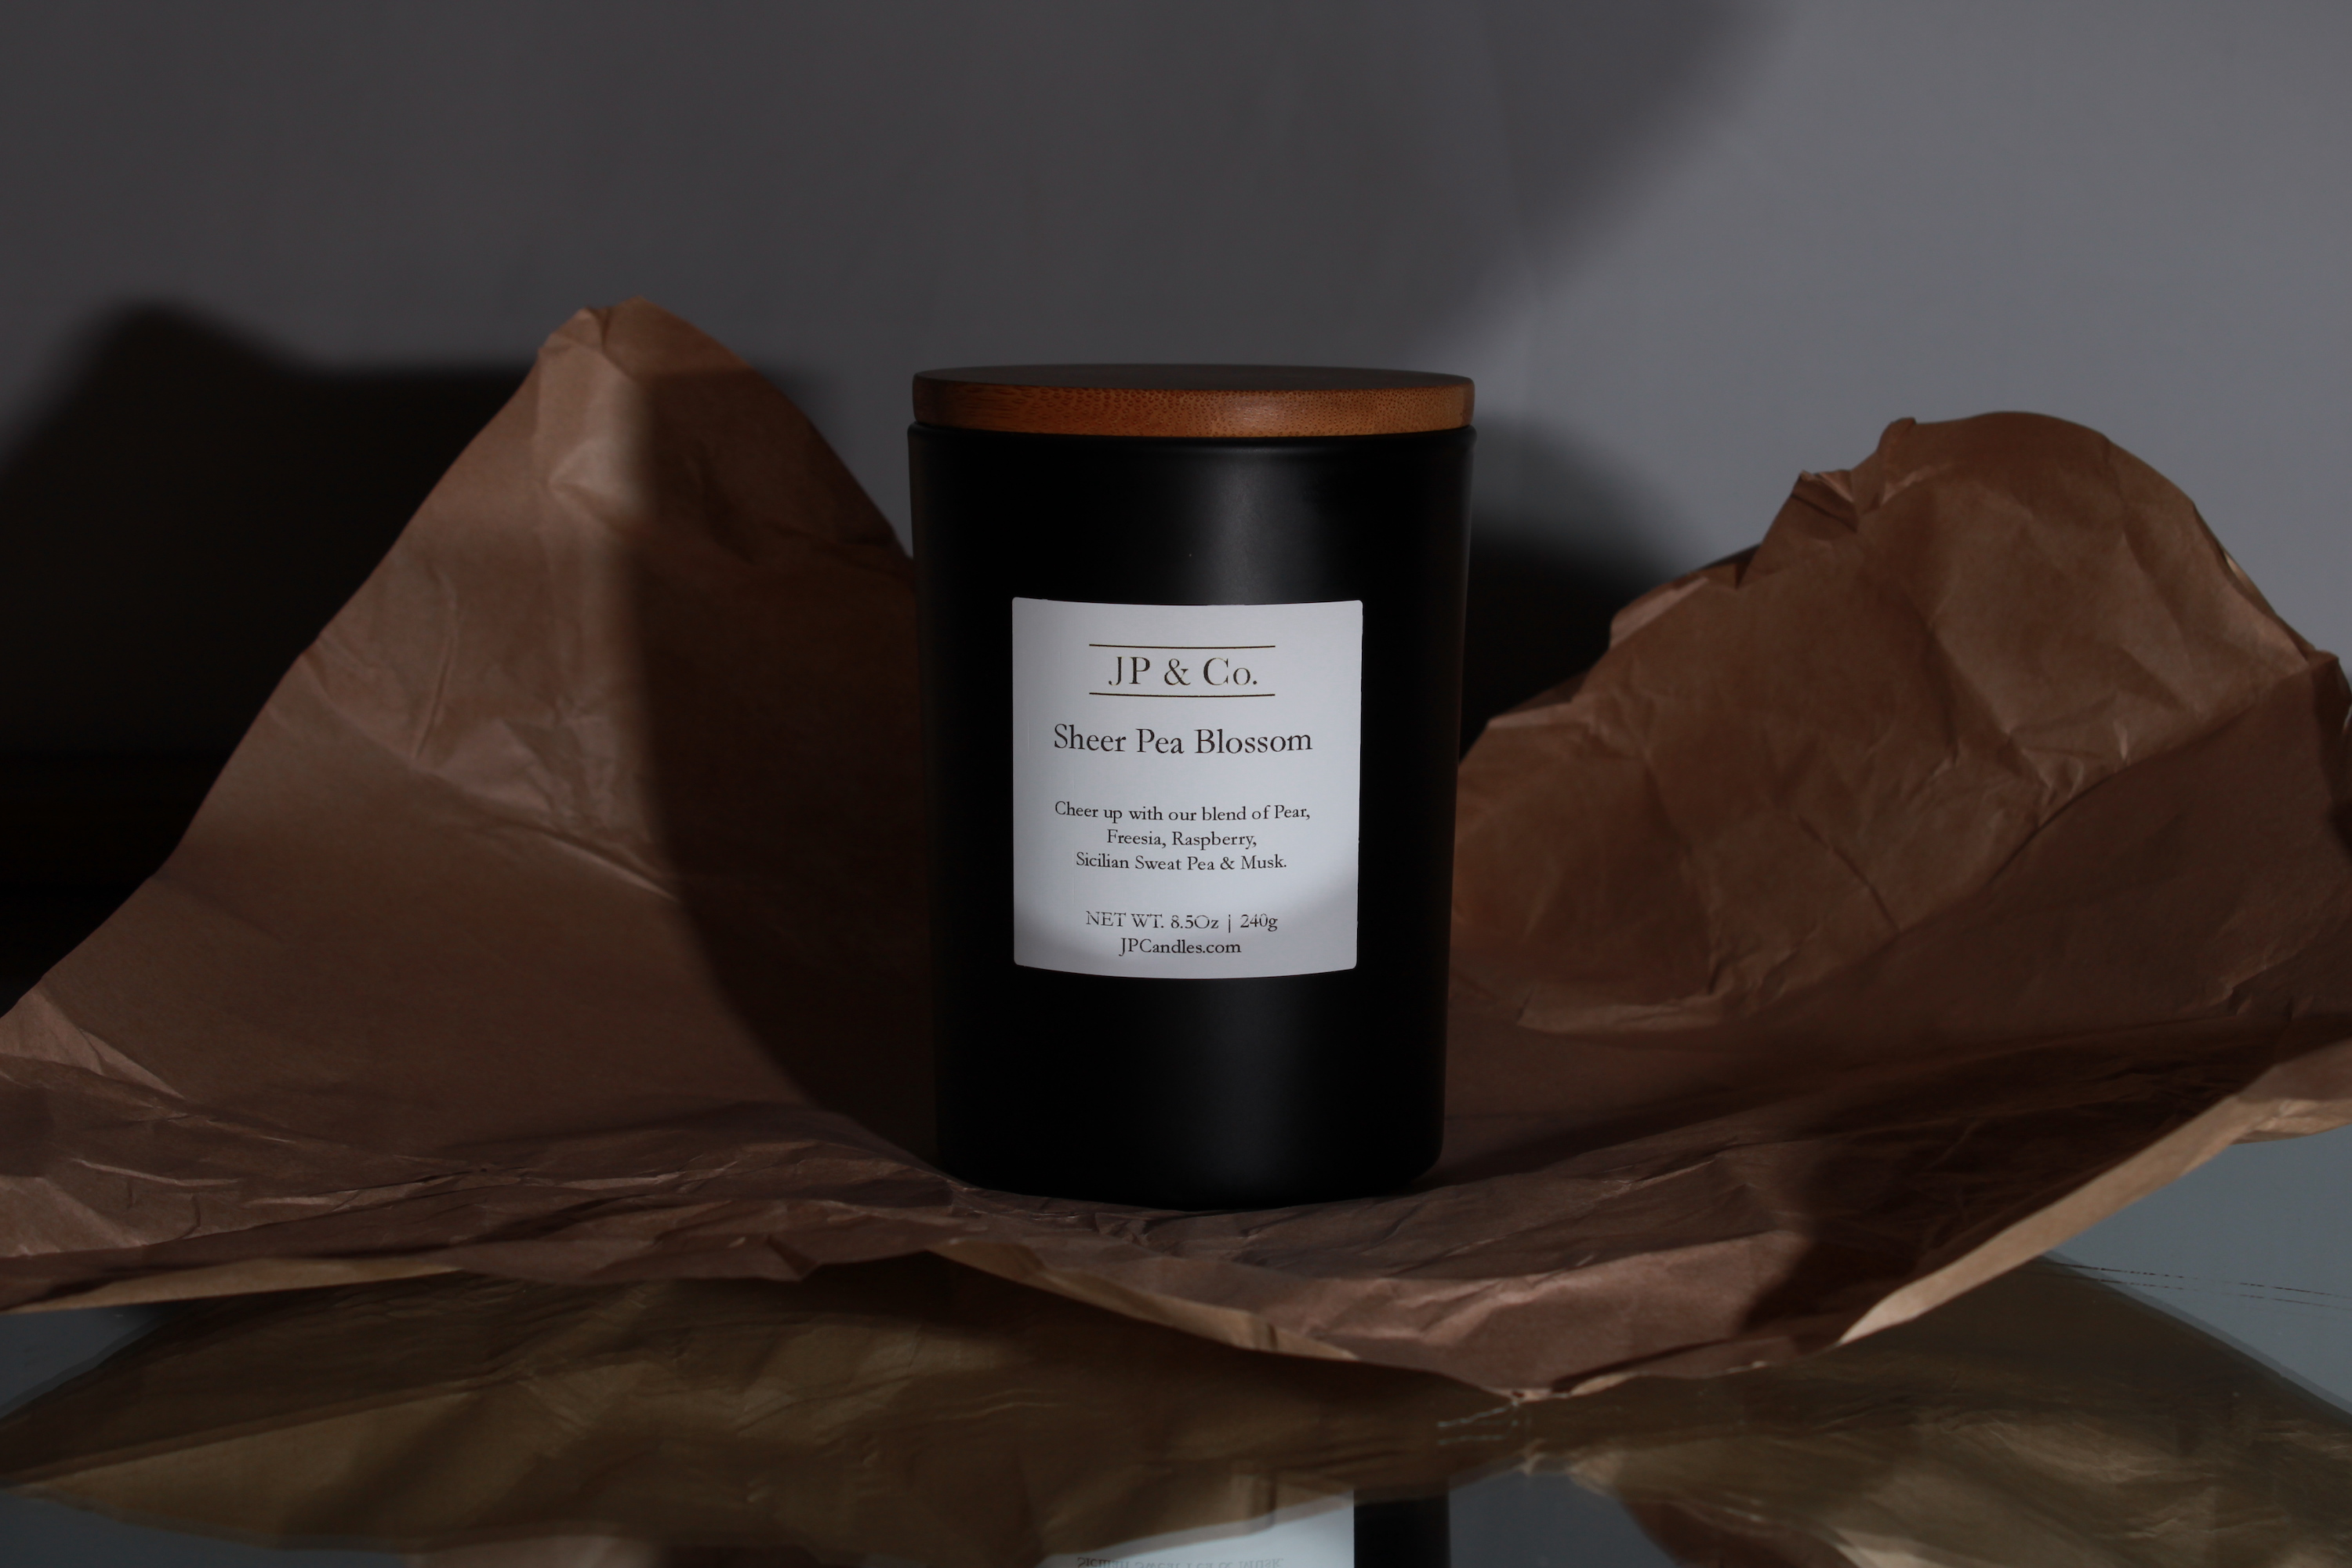 JP Candles Announces Brand Modernization & Increased Sustainability Efforts